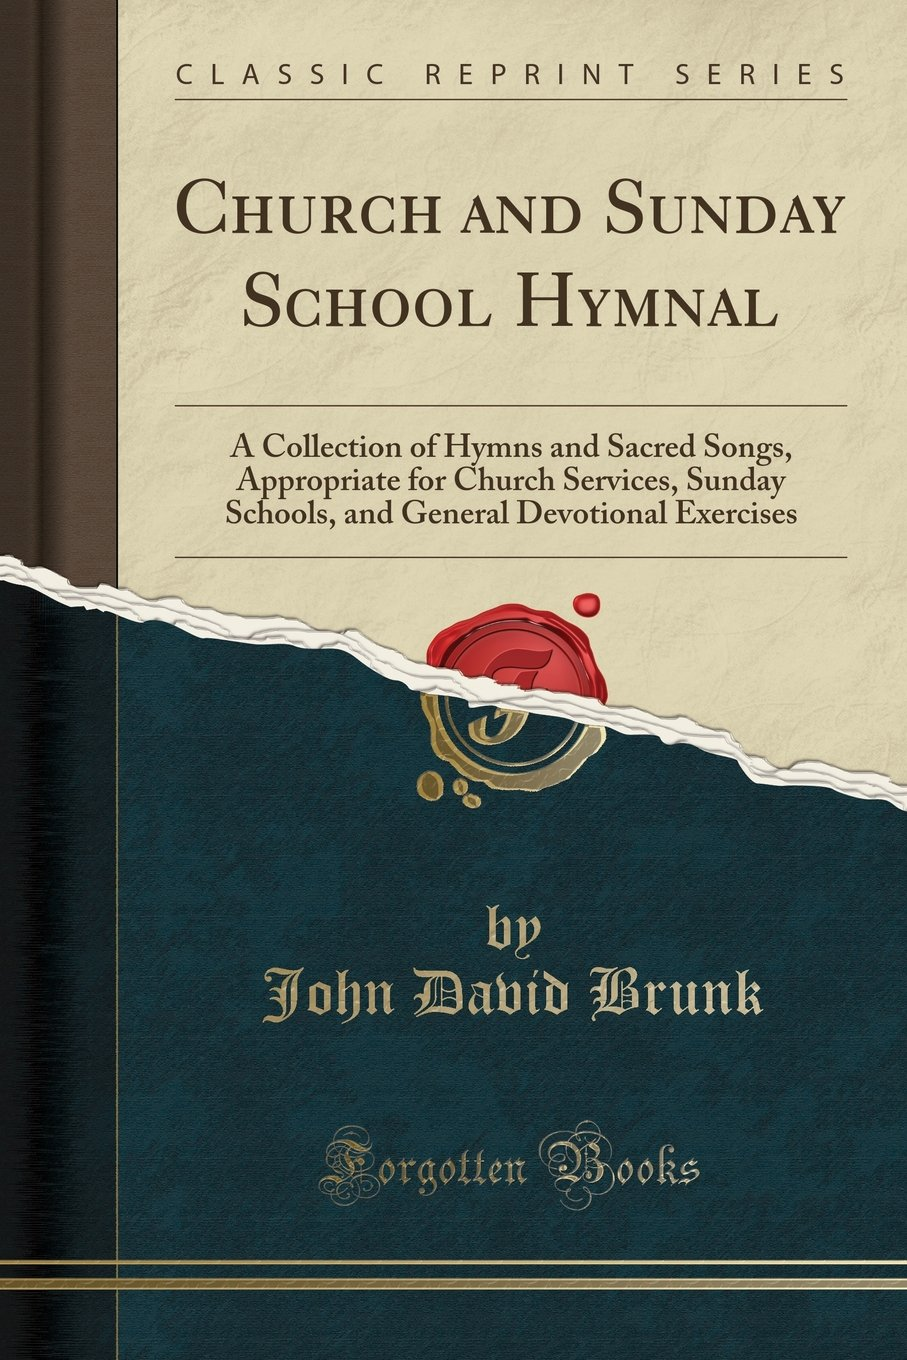 Church and Sunday School Hymnal: A Collection of Hymns and Sacred Songs, Appropriate for Church Services, Sunday Schools, and General Devotional Exercises (Classic Reprint) pdf